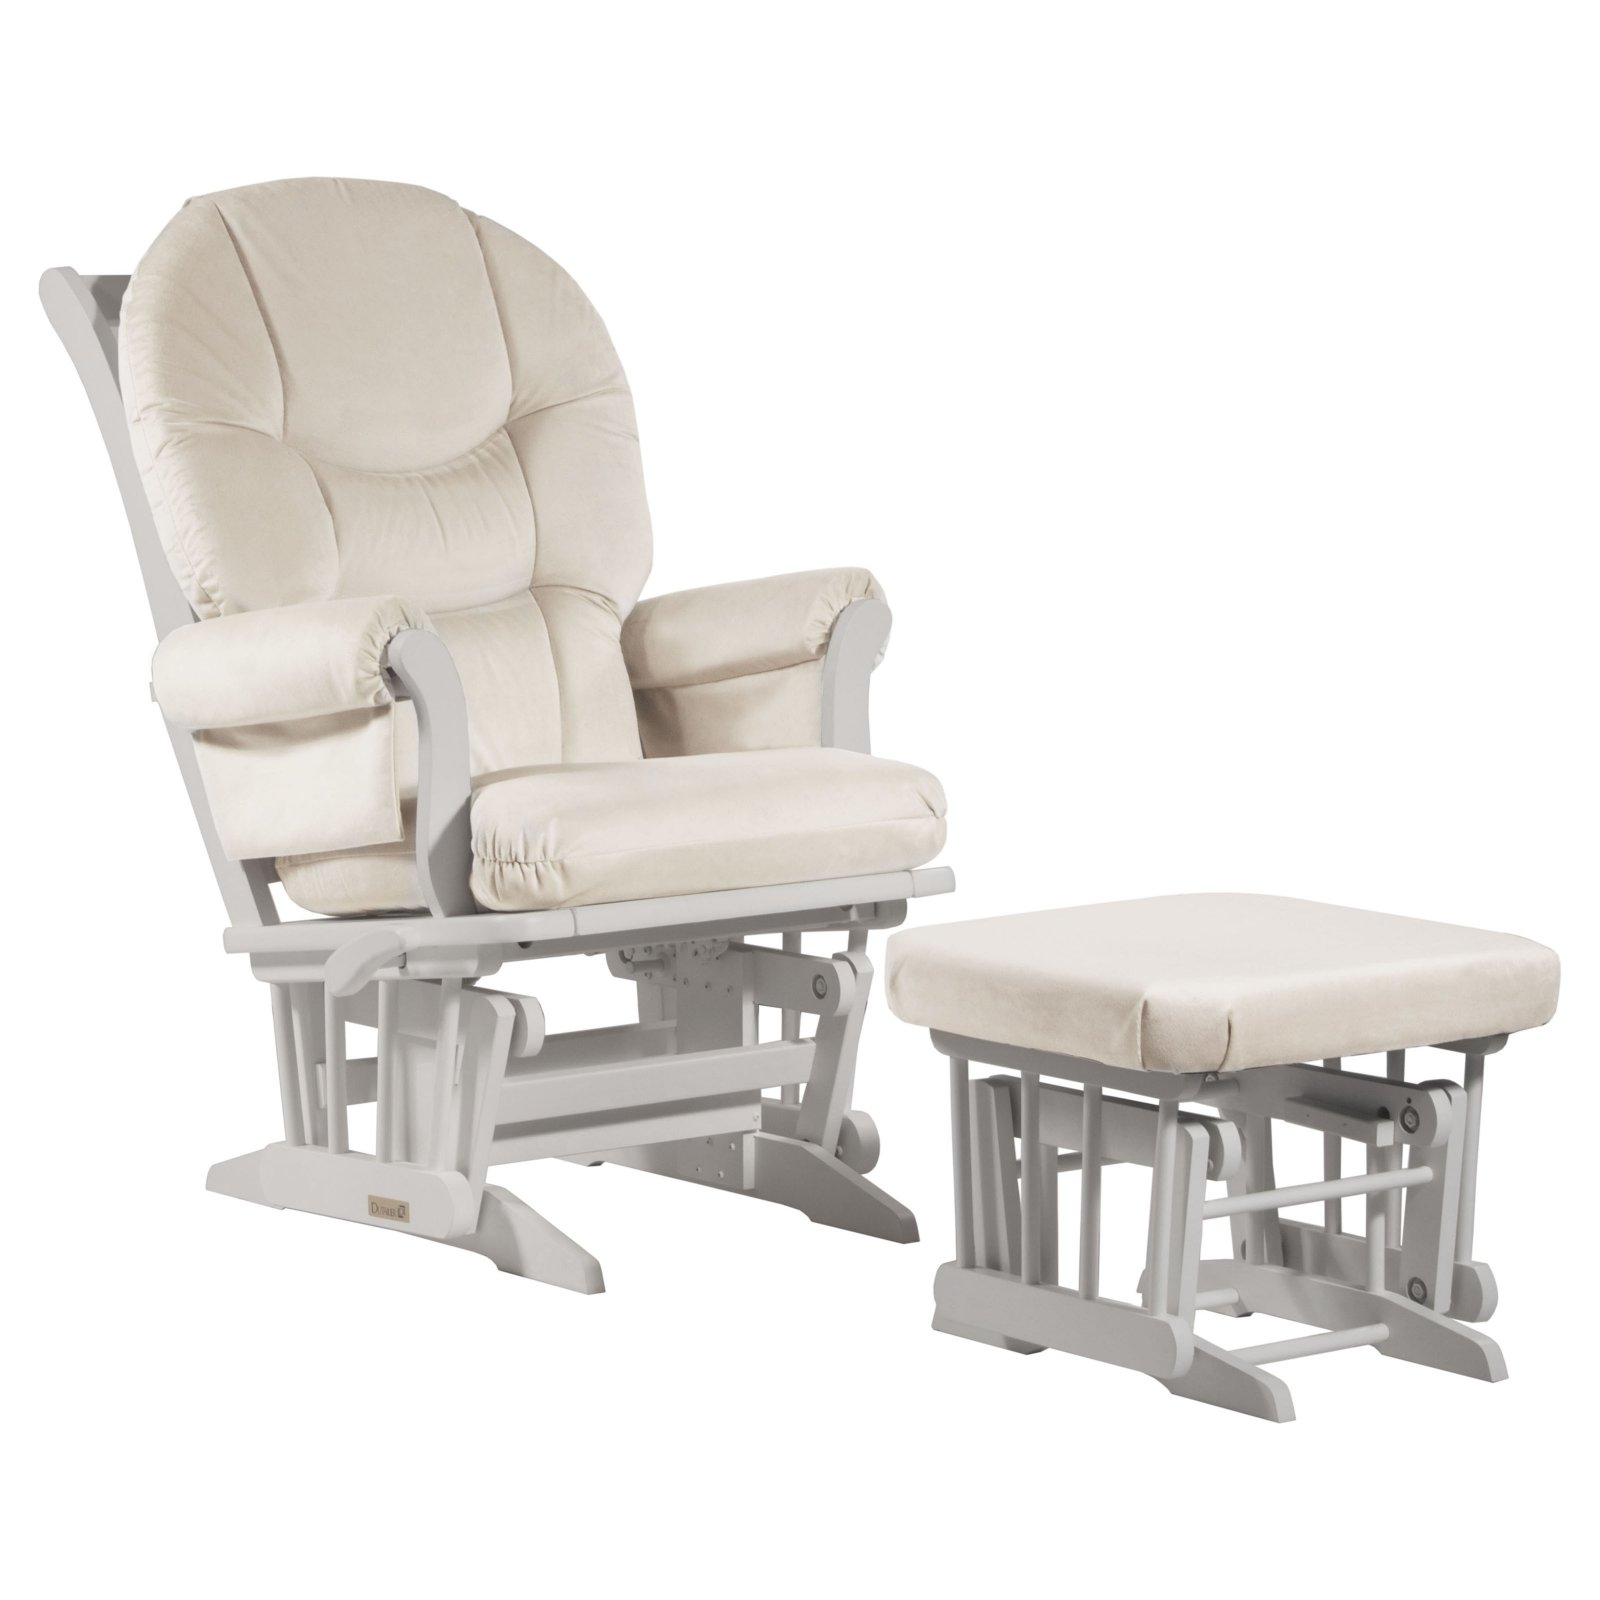 Dutailier Bowback Sleigh Glider with Ottoman